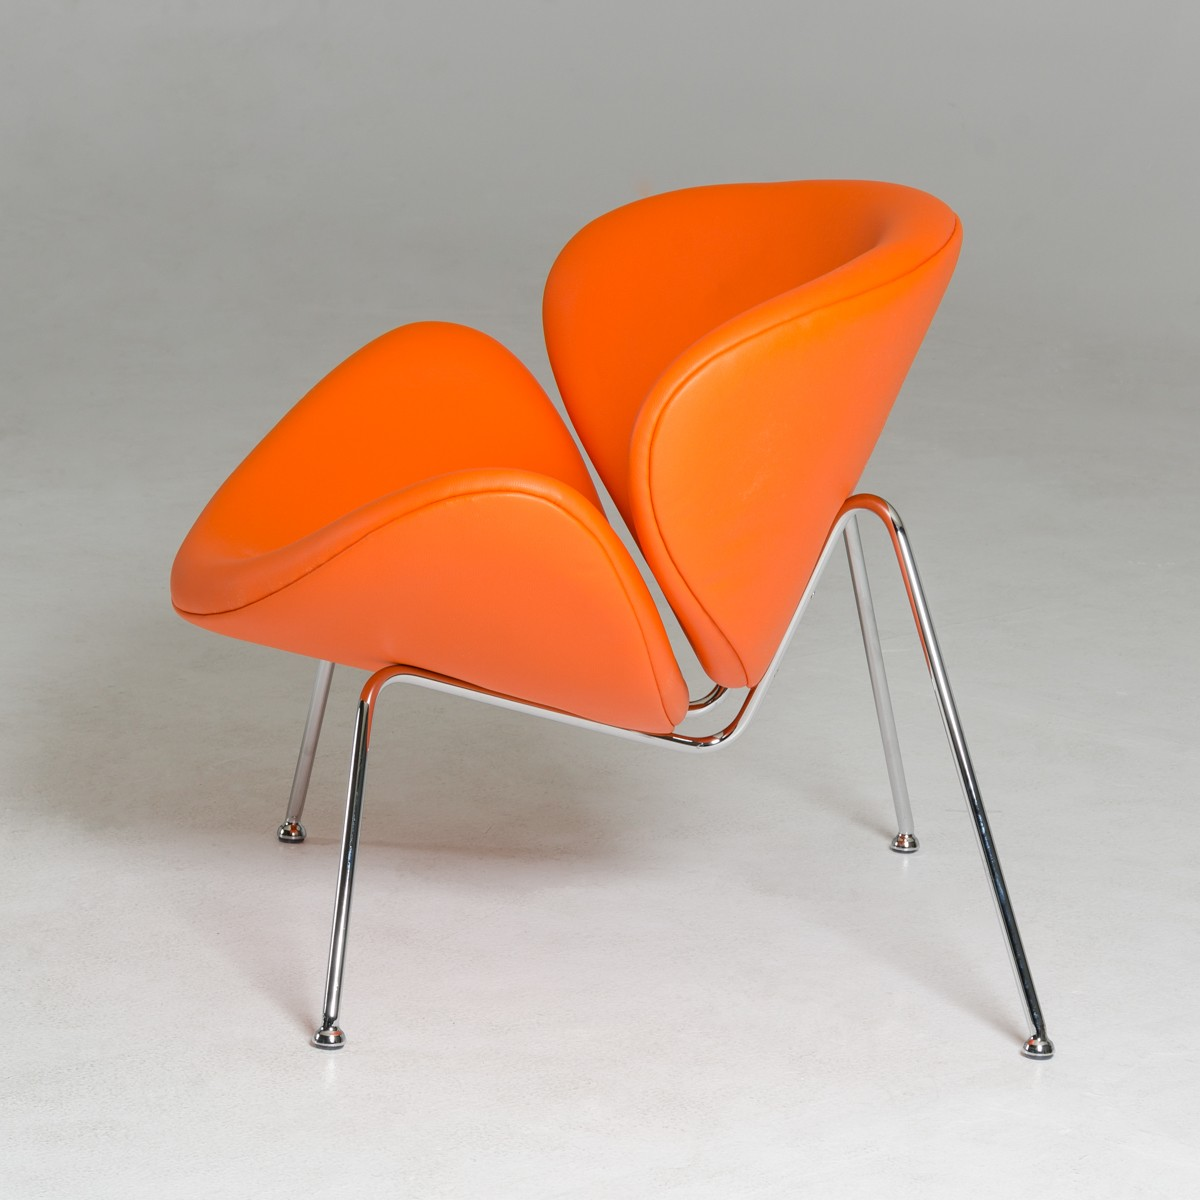 Contemporary Orange Leatherette Stainless Steel Legs Chair - Click Image to Close